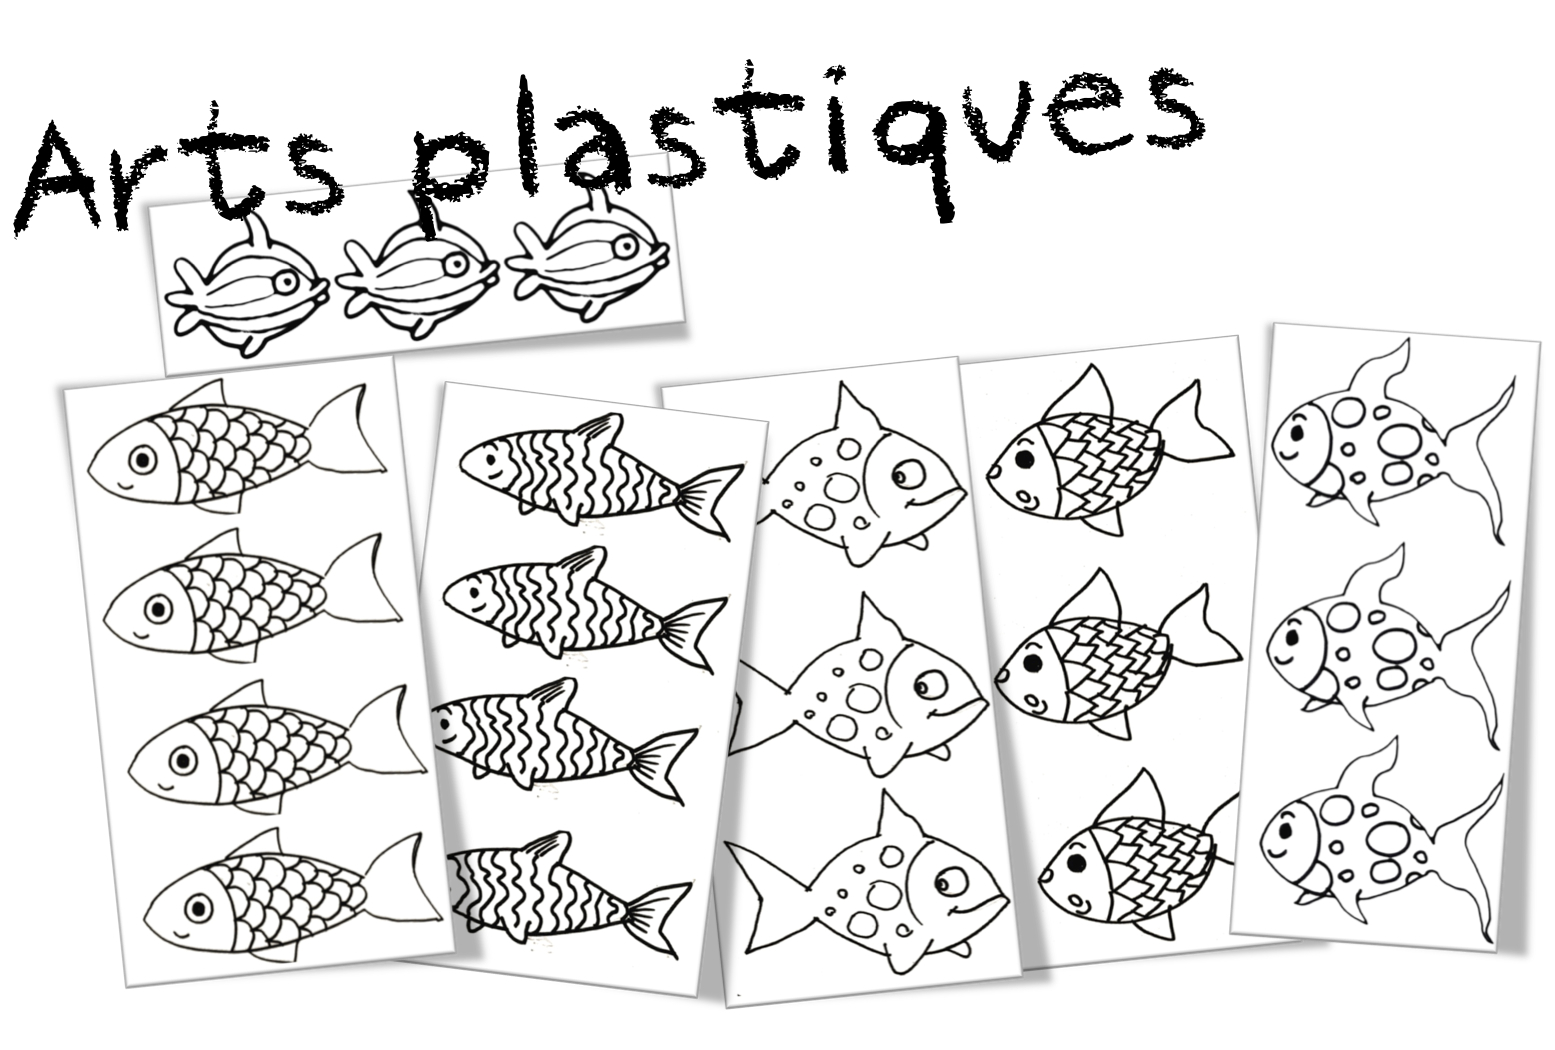 Coloriage Poisson Davril A Colorier.Le 1er Avril Coloriages Production D Ecrits Poesie Art